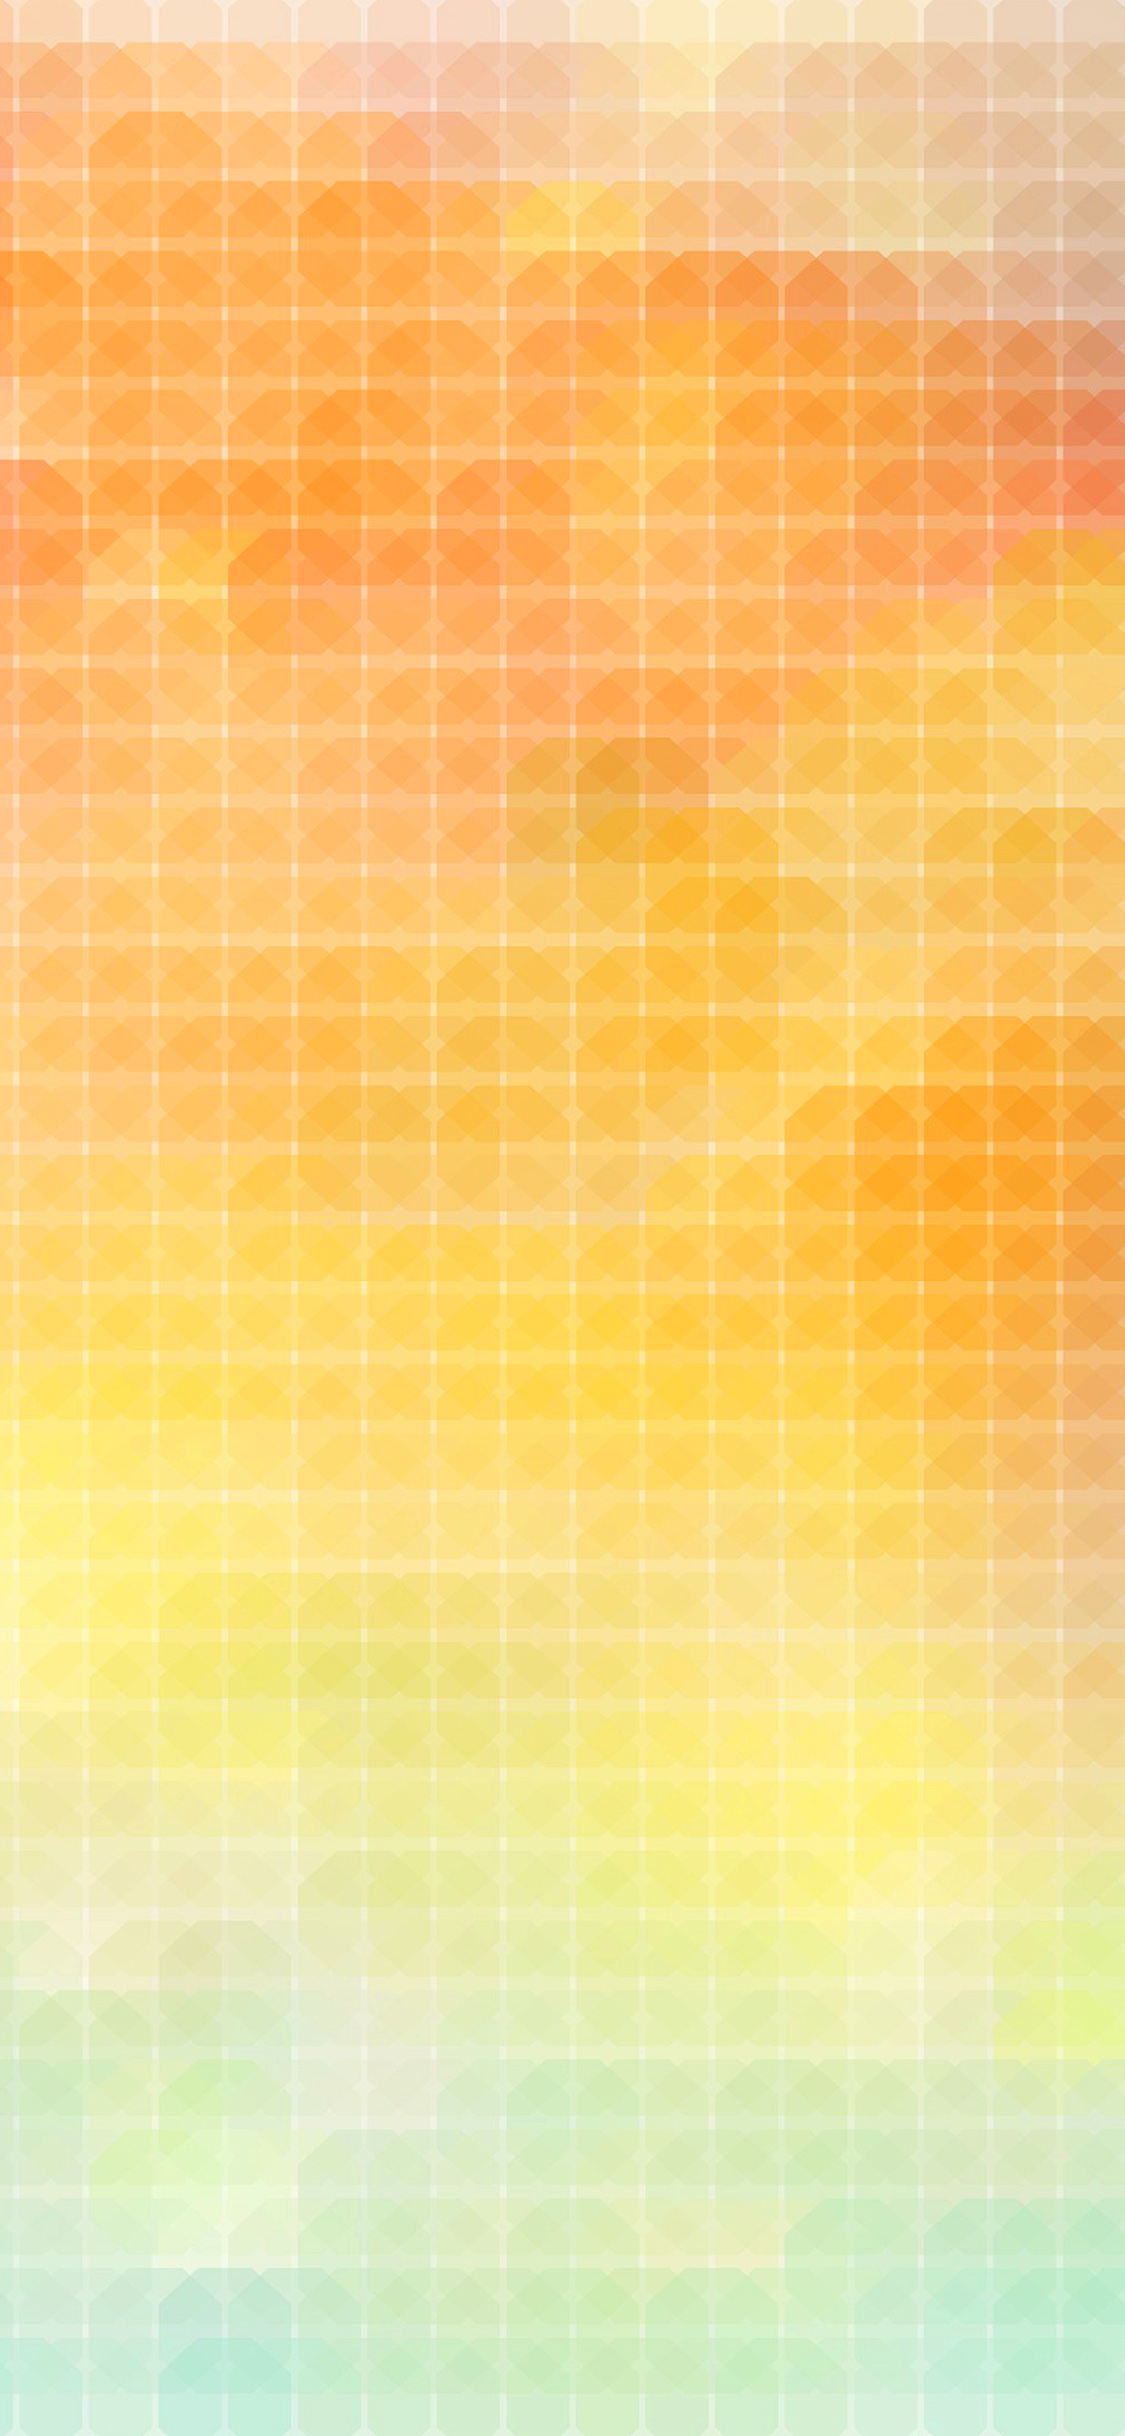 iPhoneXpapers.com-Apple-iPhone-wallpaper-vp53-bokeh-digital-abstract-art-pattern